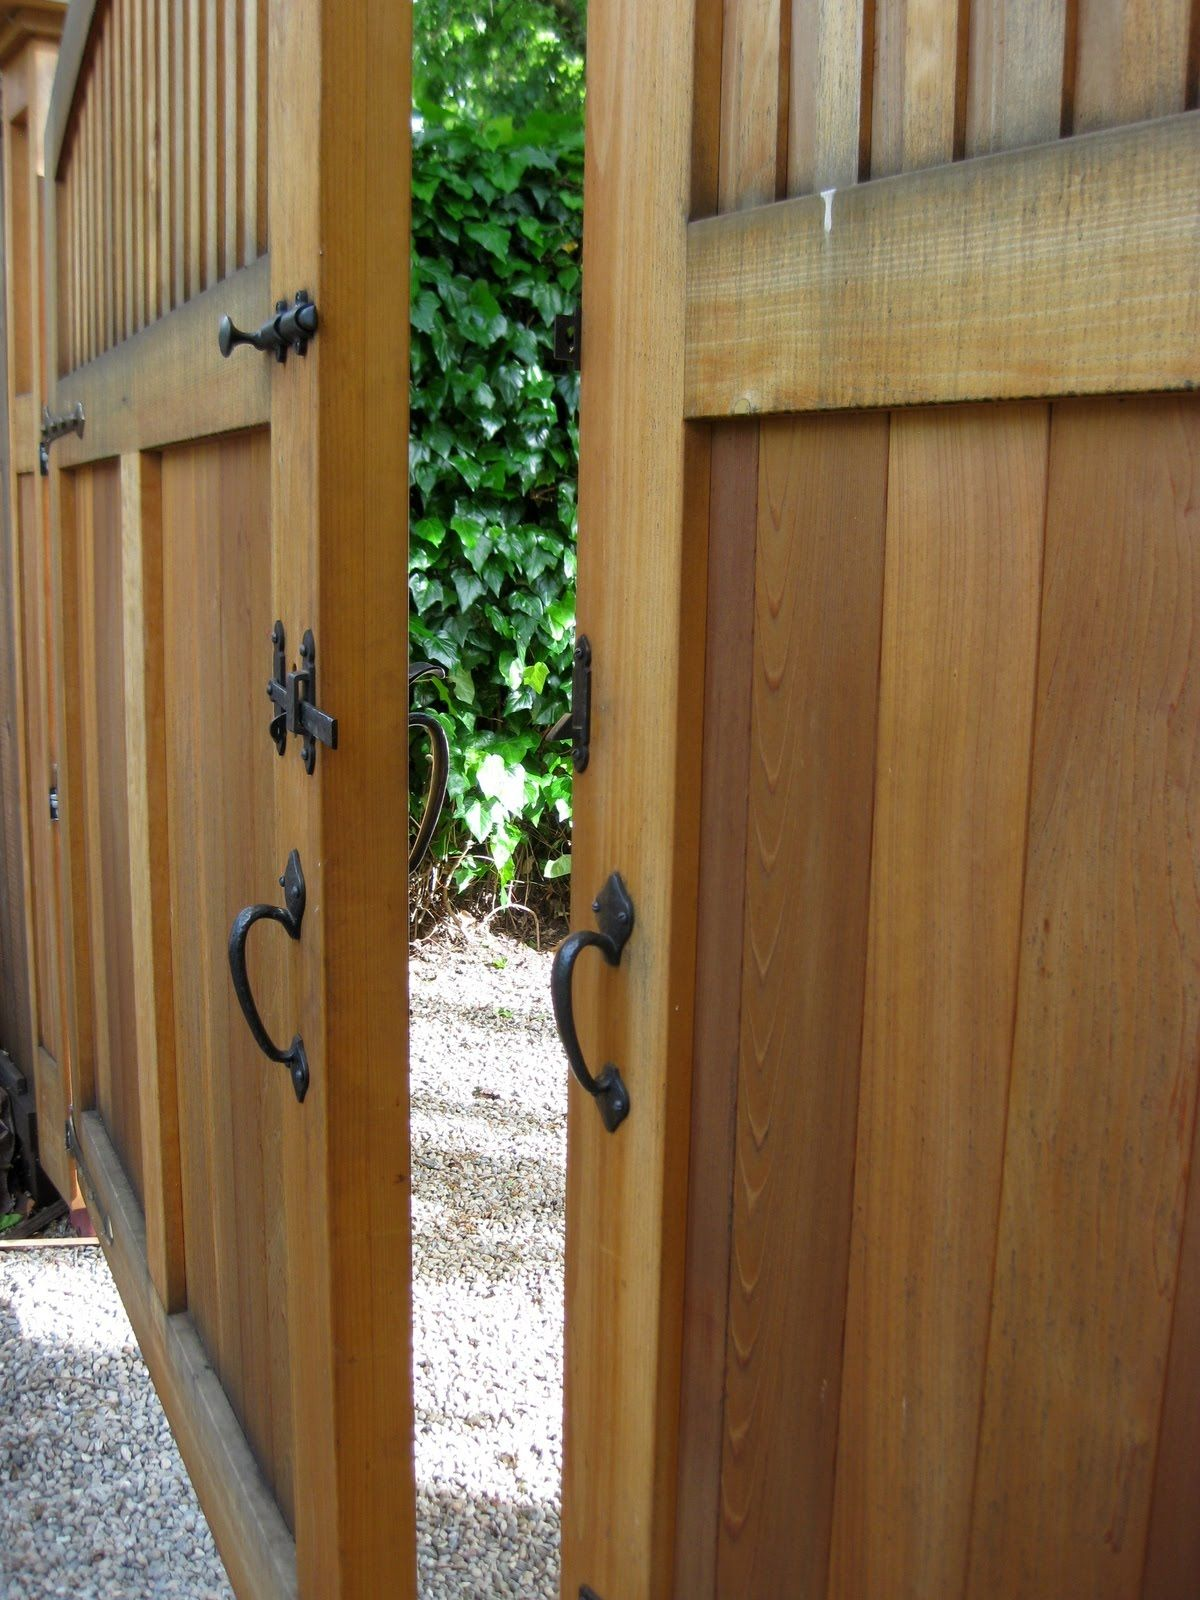 This Is A Complete Set Of Hardware To Hang Double Wooden Gates Includes Latch Coordinating Pull Handle For The Second Gate